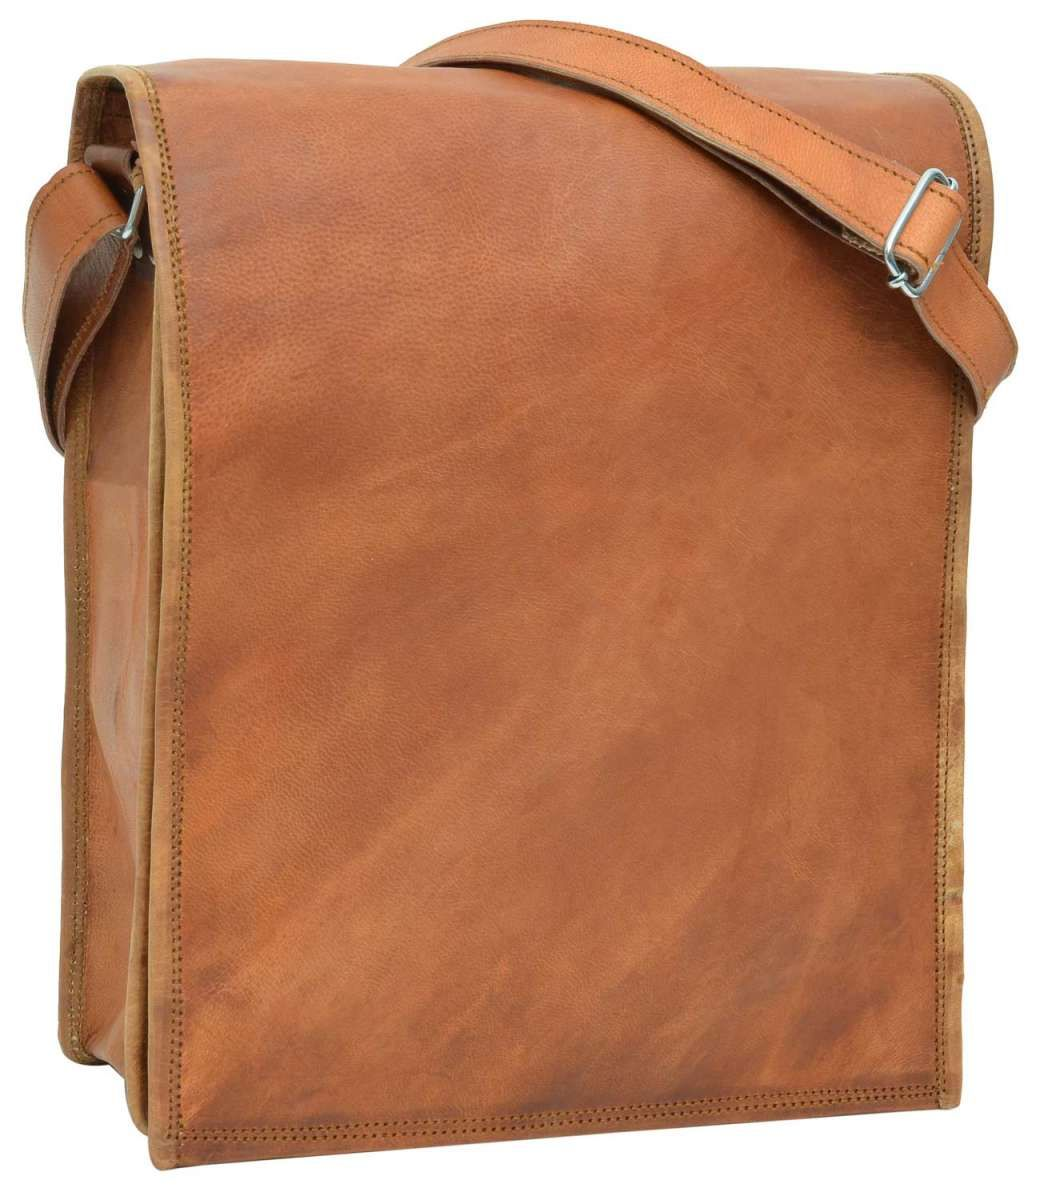 Roman backpack   Simple Rugged Bags   Pinterest   Bags, Rugs and Waxed  canvas 9335db726a